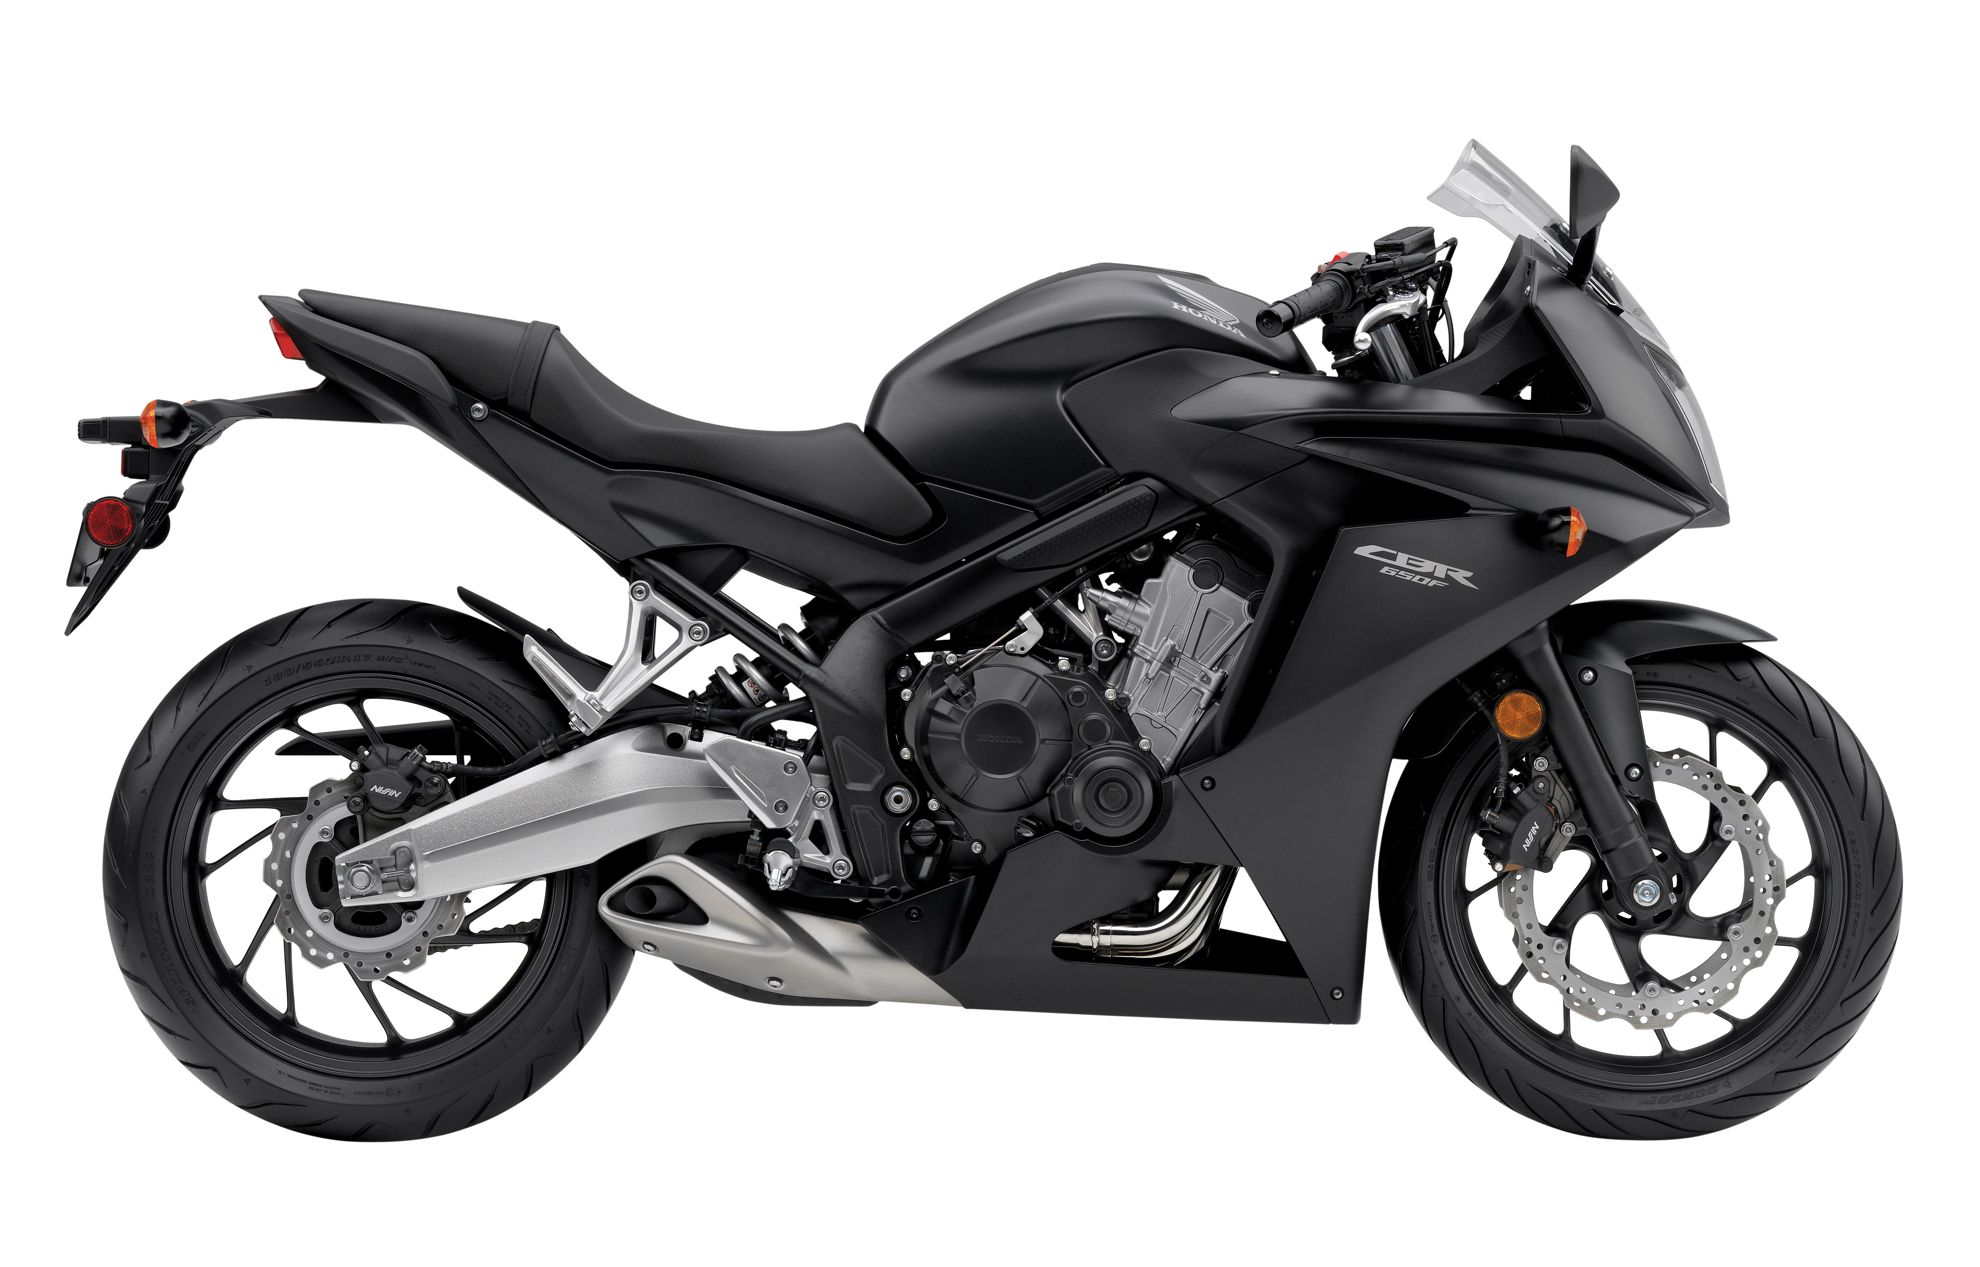 Honda Motorcycles New Models For 2014